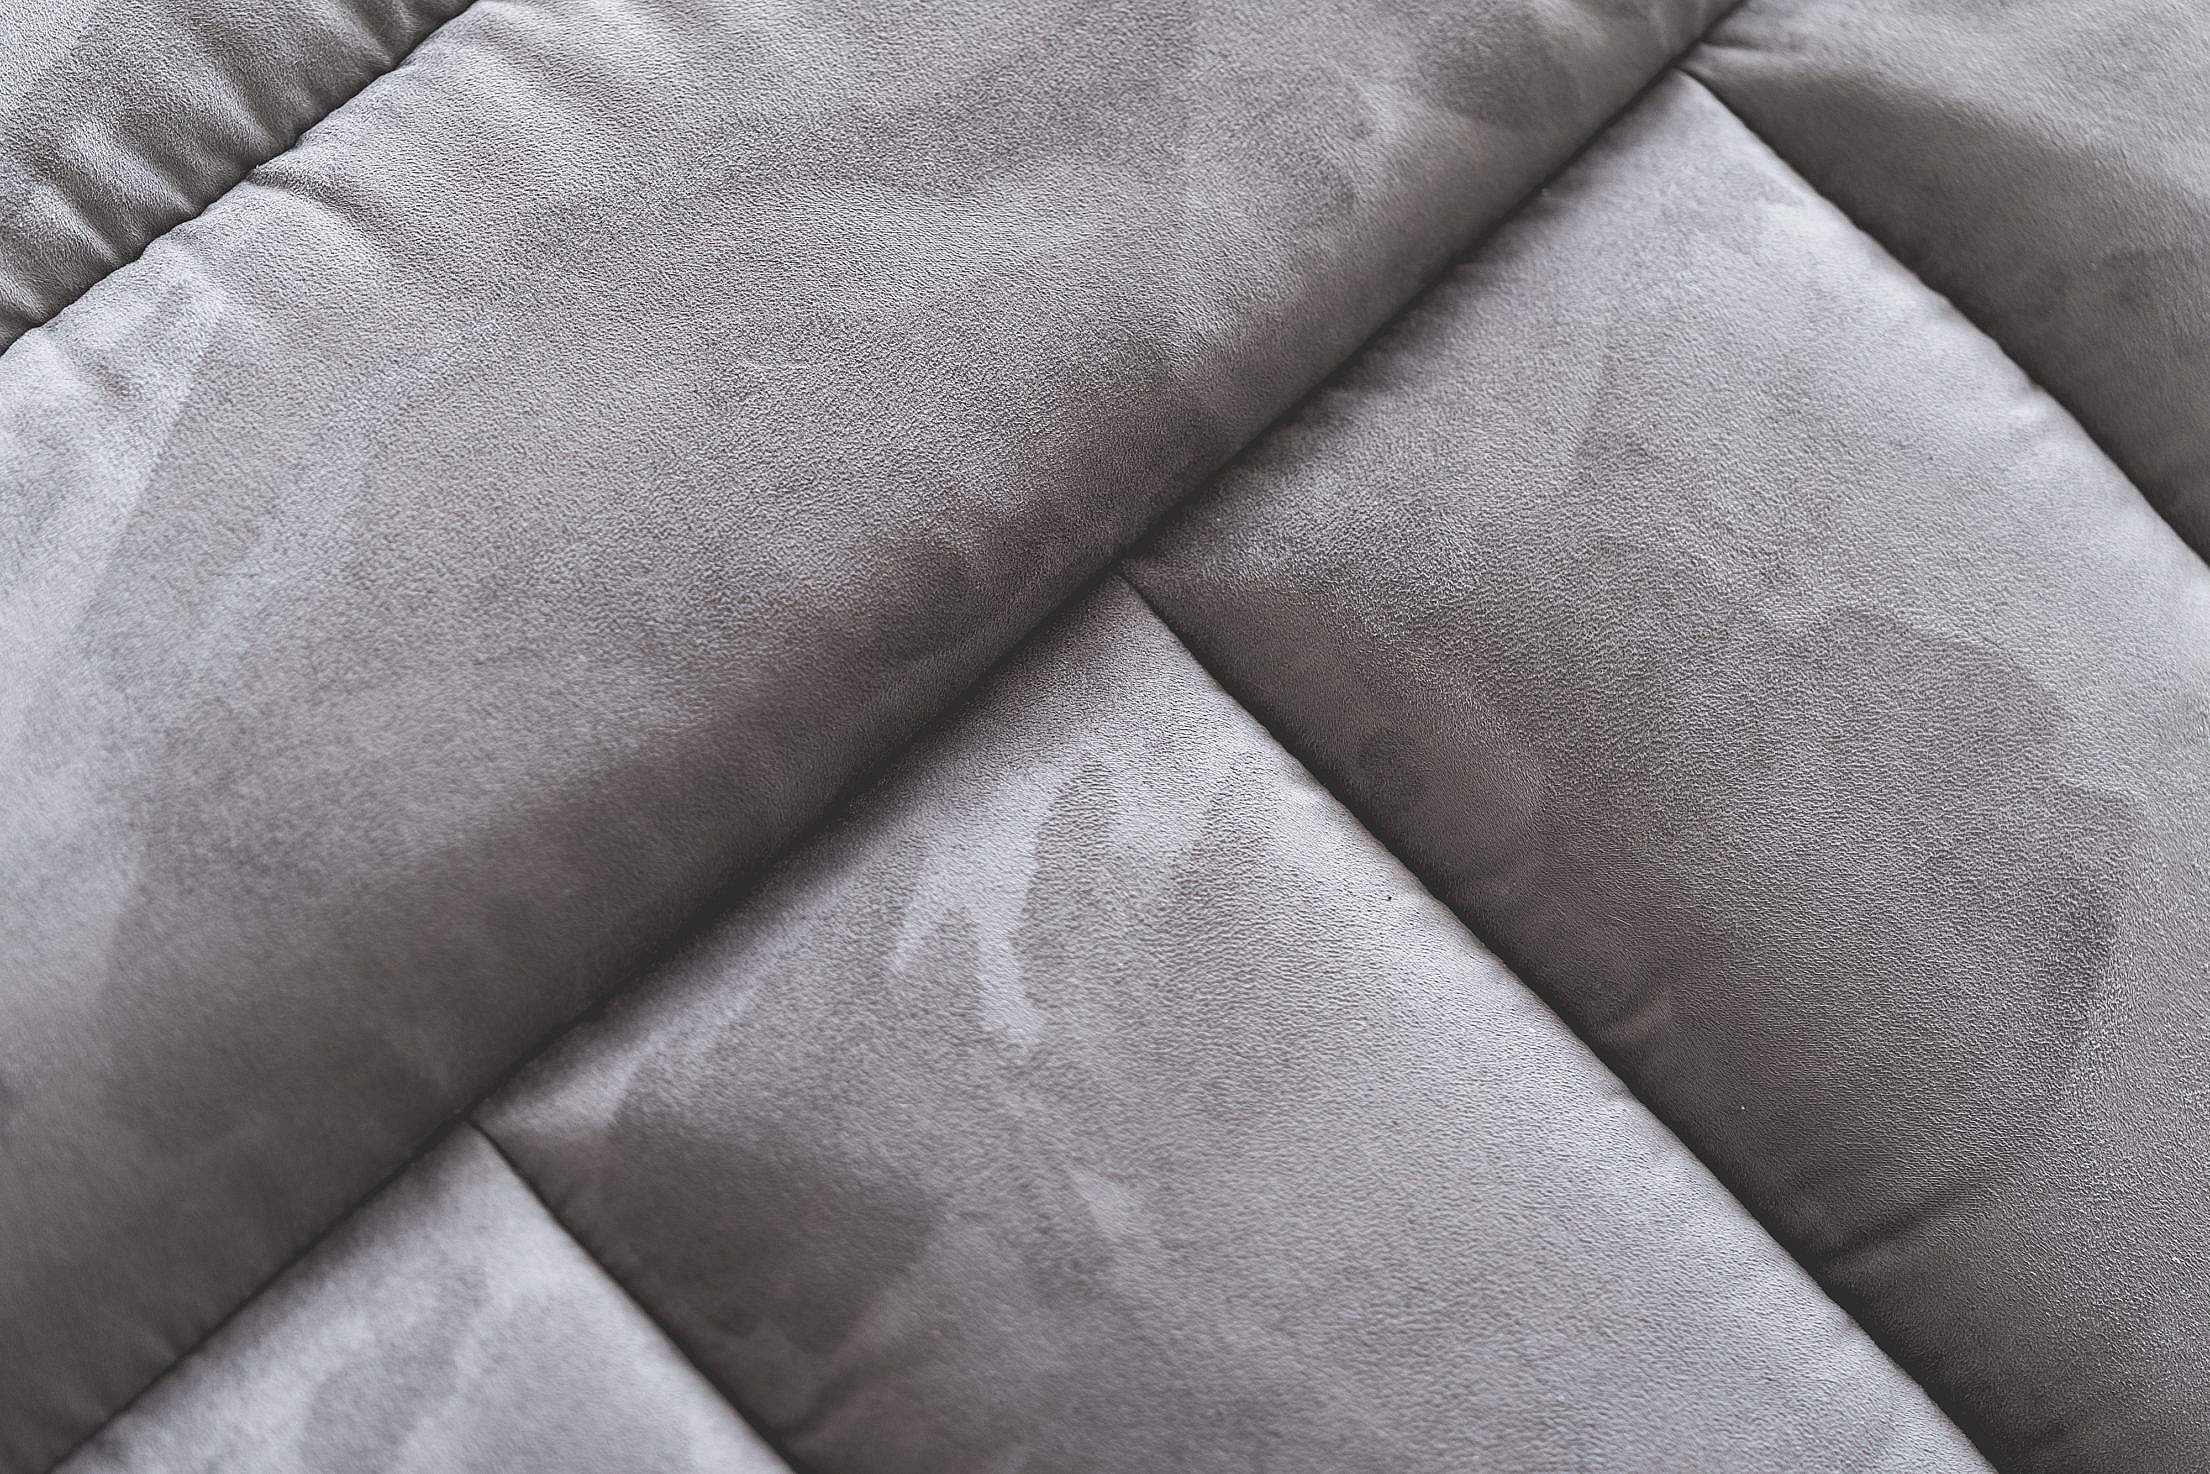 Gray Suede Sofa Abstract Close Up Free Stock Photo